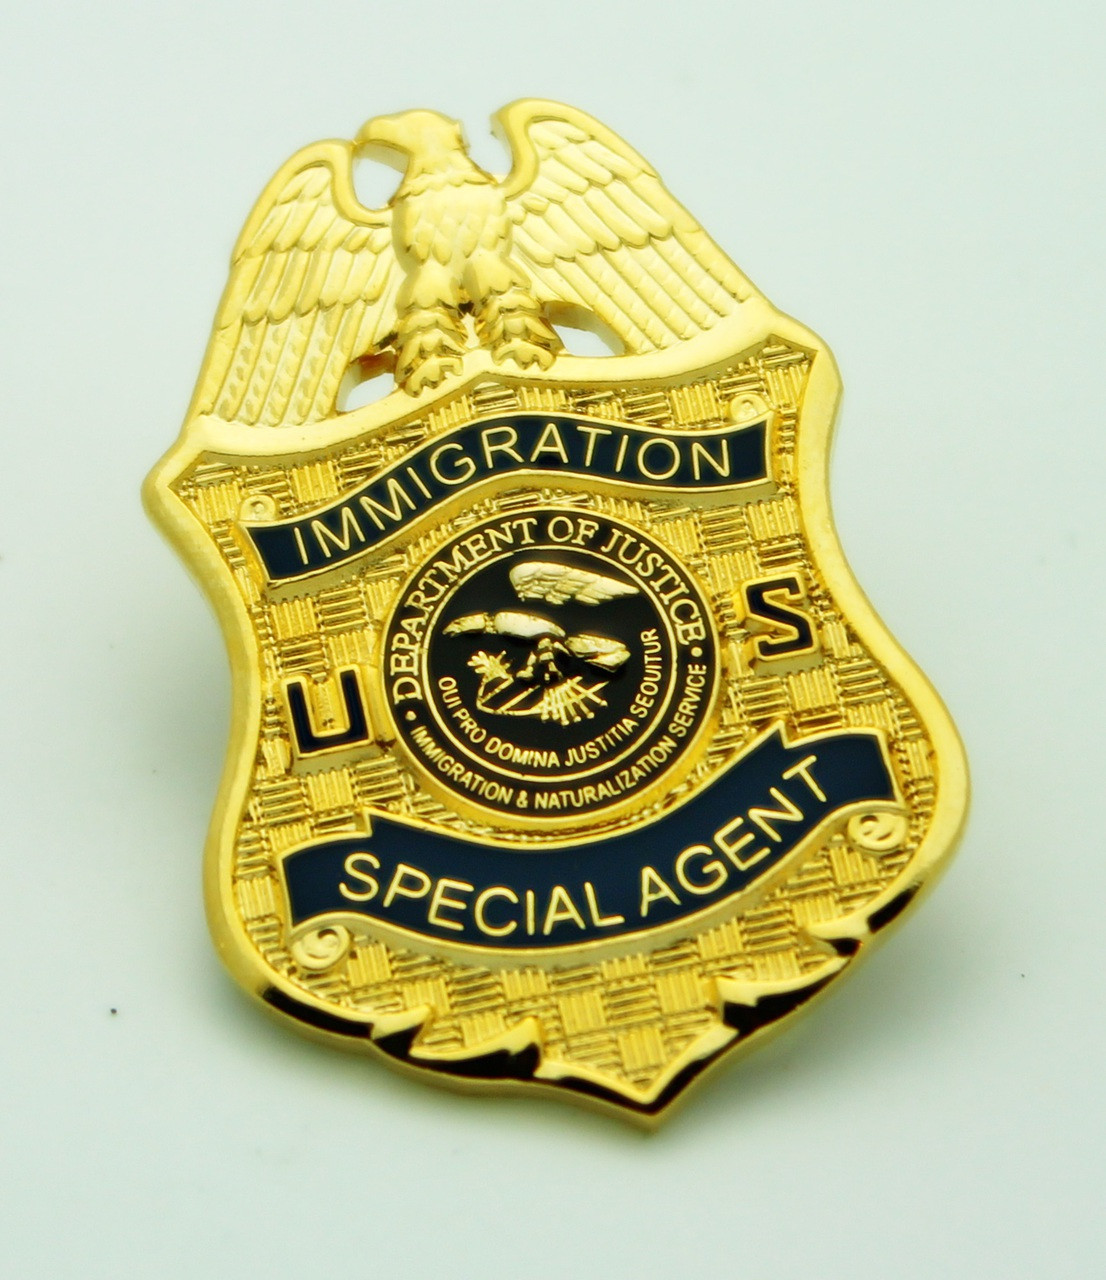 Legacy Immigration And Naturalization Service Special